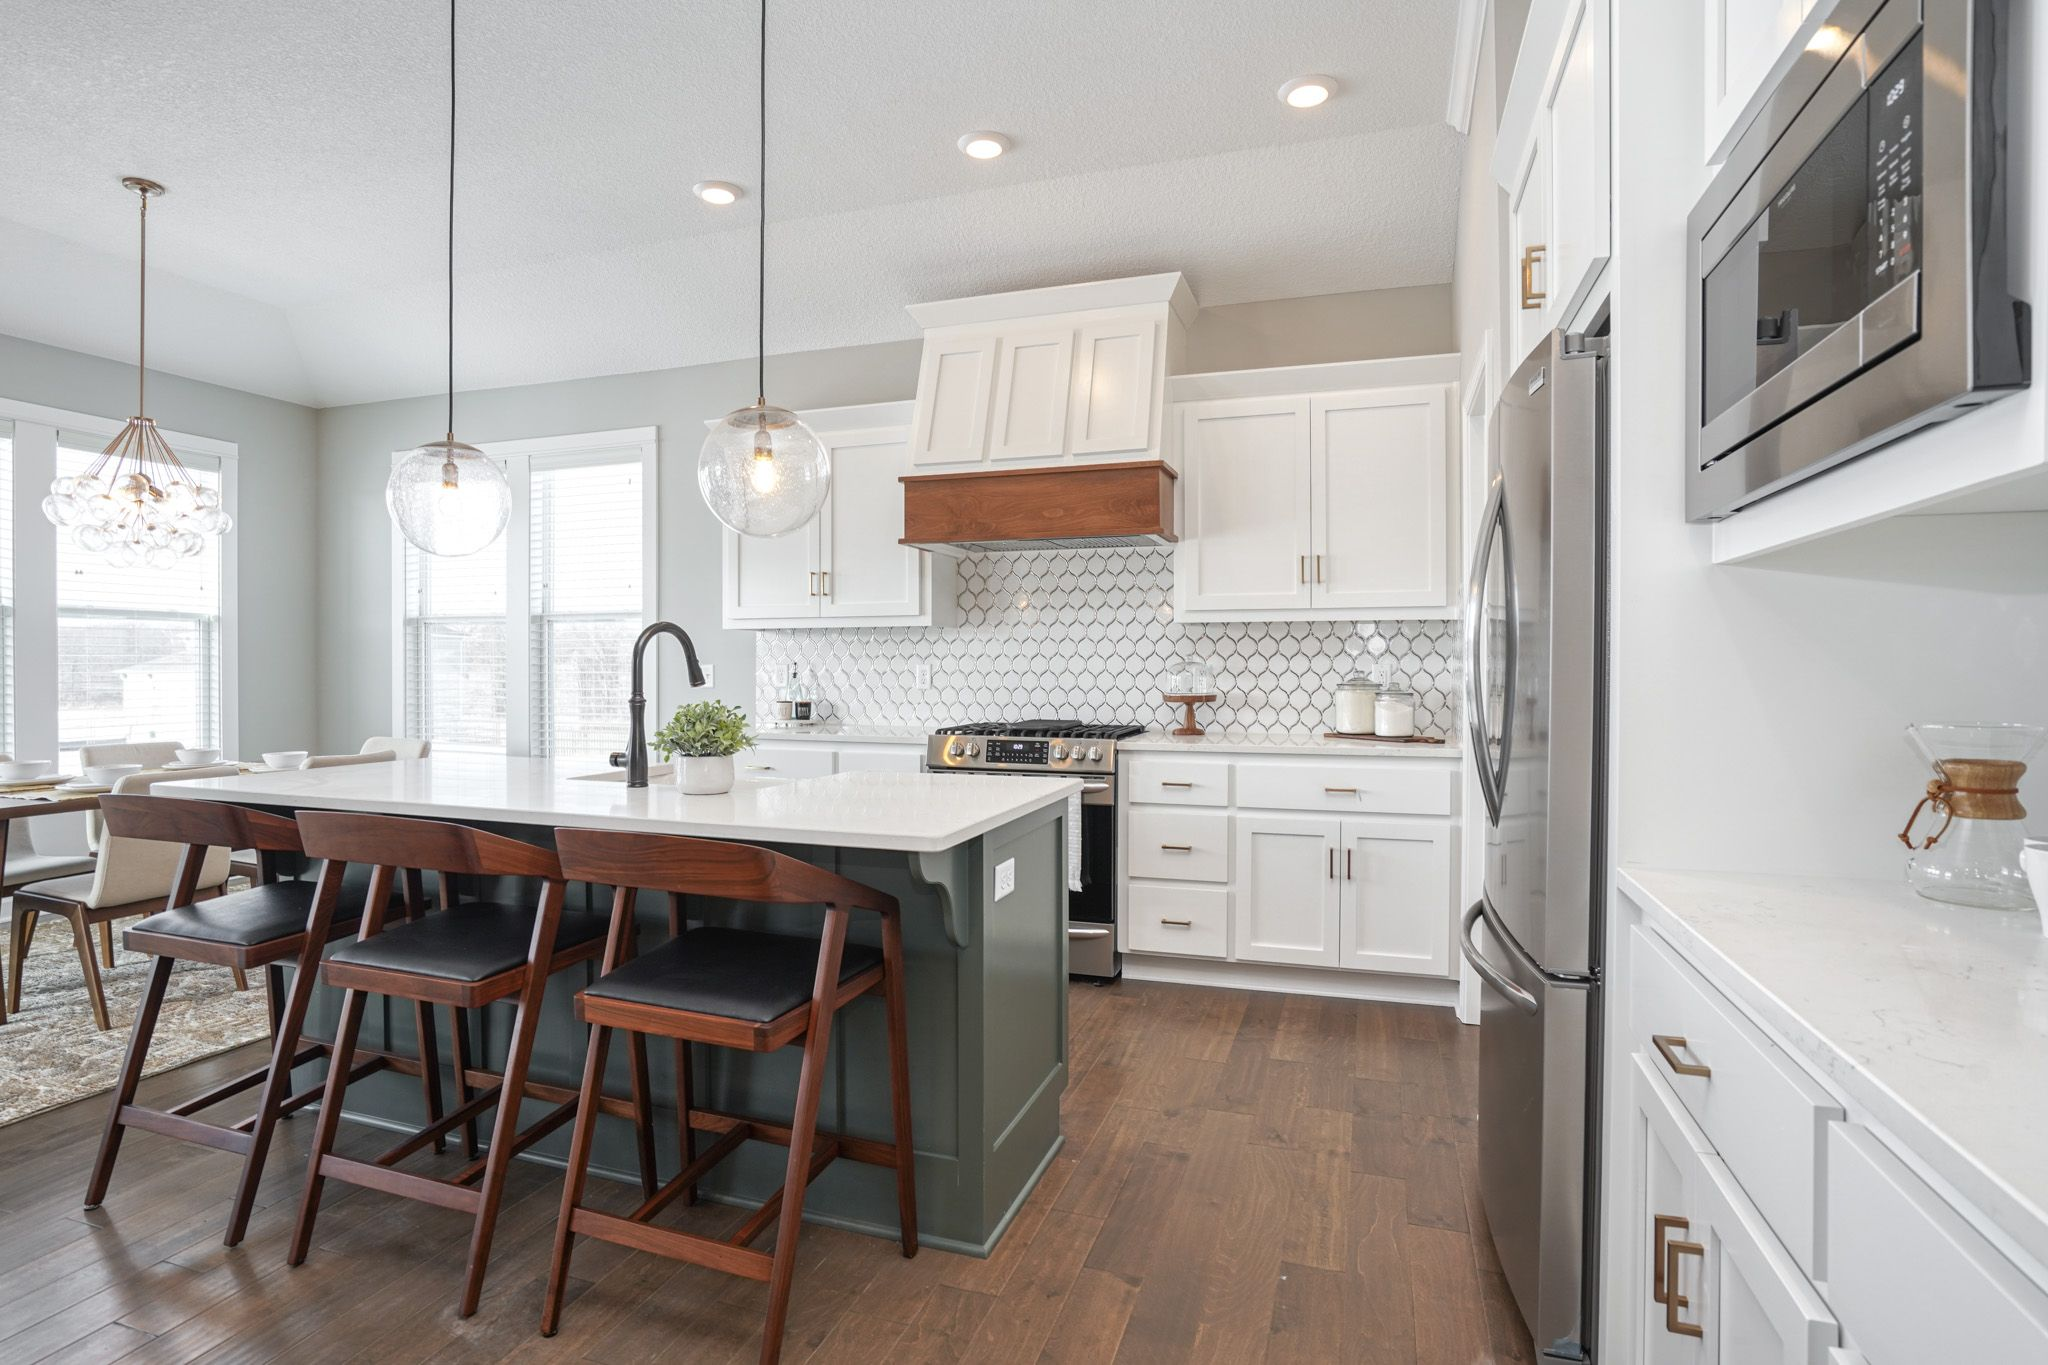 Kitchen featured in the Newhaven By Summit Homes in Kansas City, MO